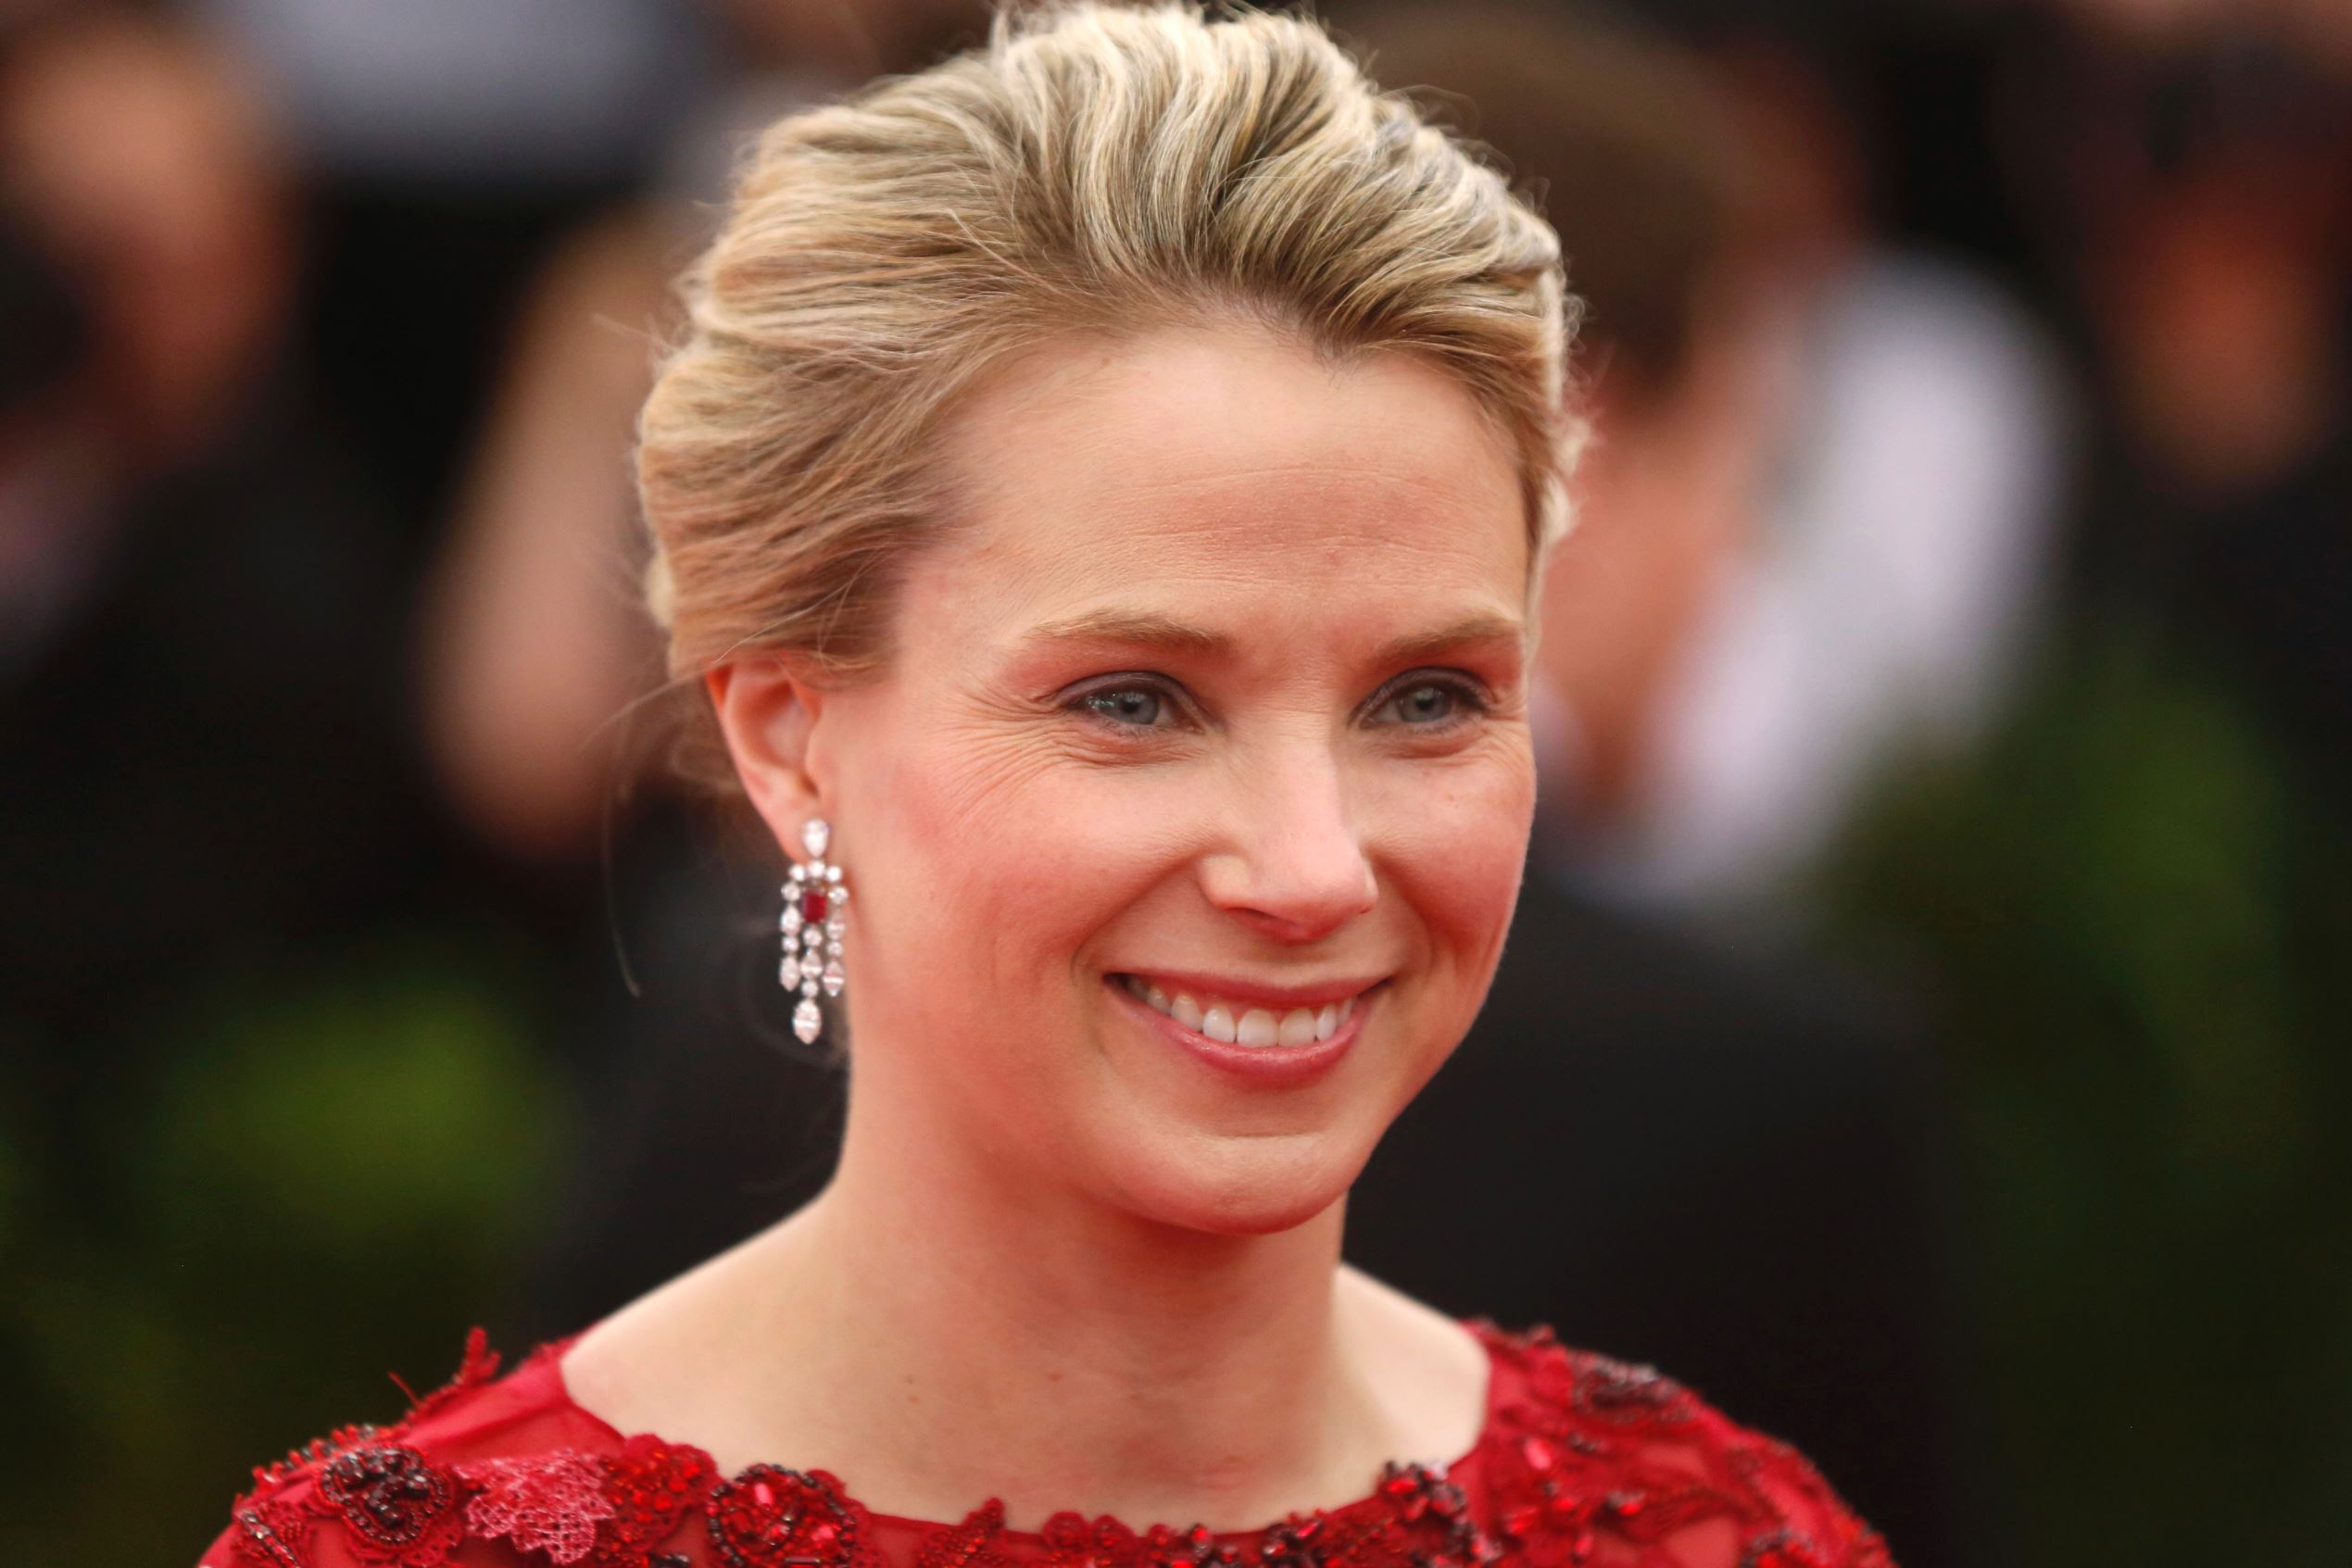 Yahoo! CEO Marissa Mayer arrives at the Metropolitan Museum of Art Costume Institute Gala in New York in May.